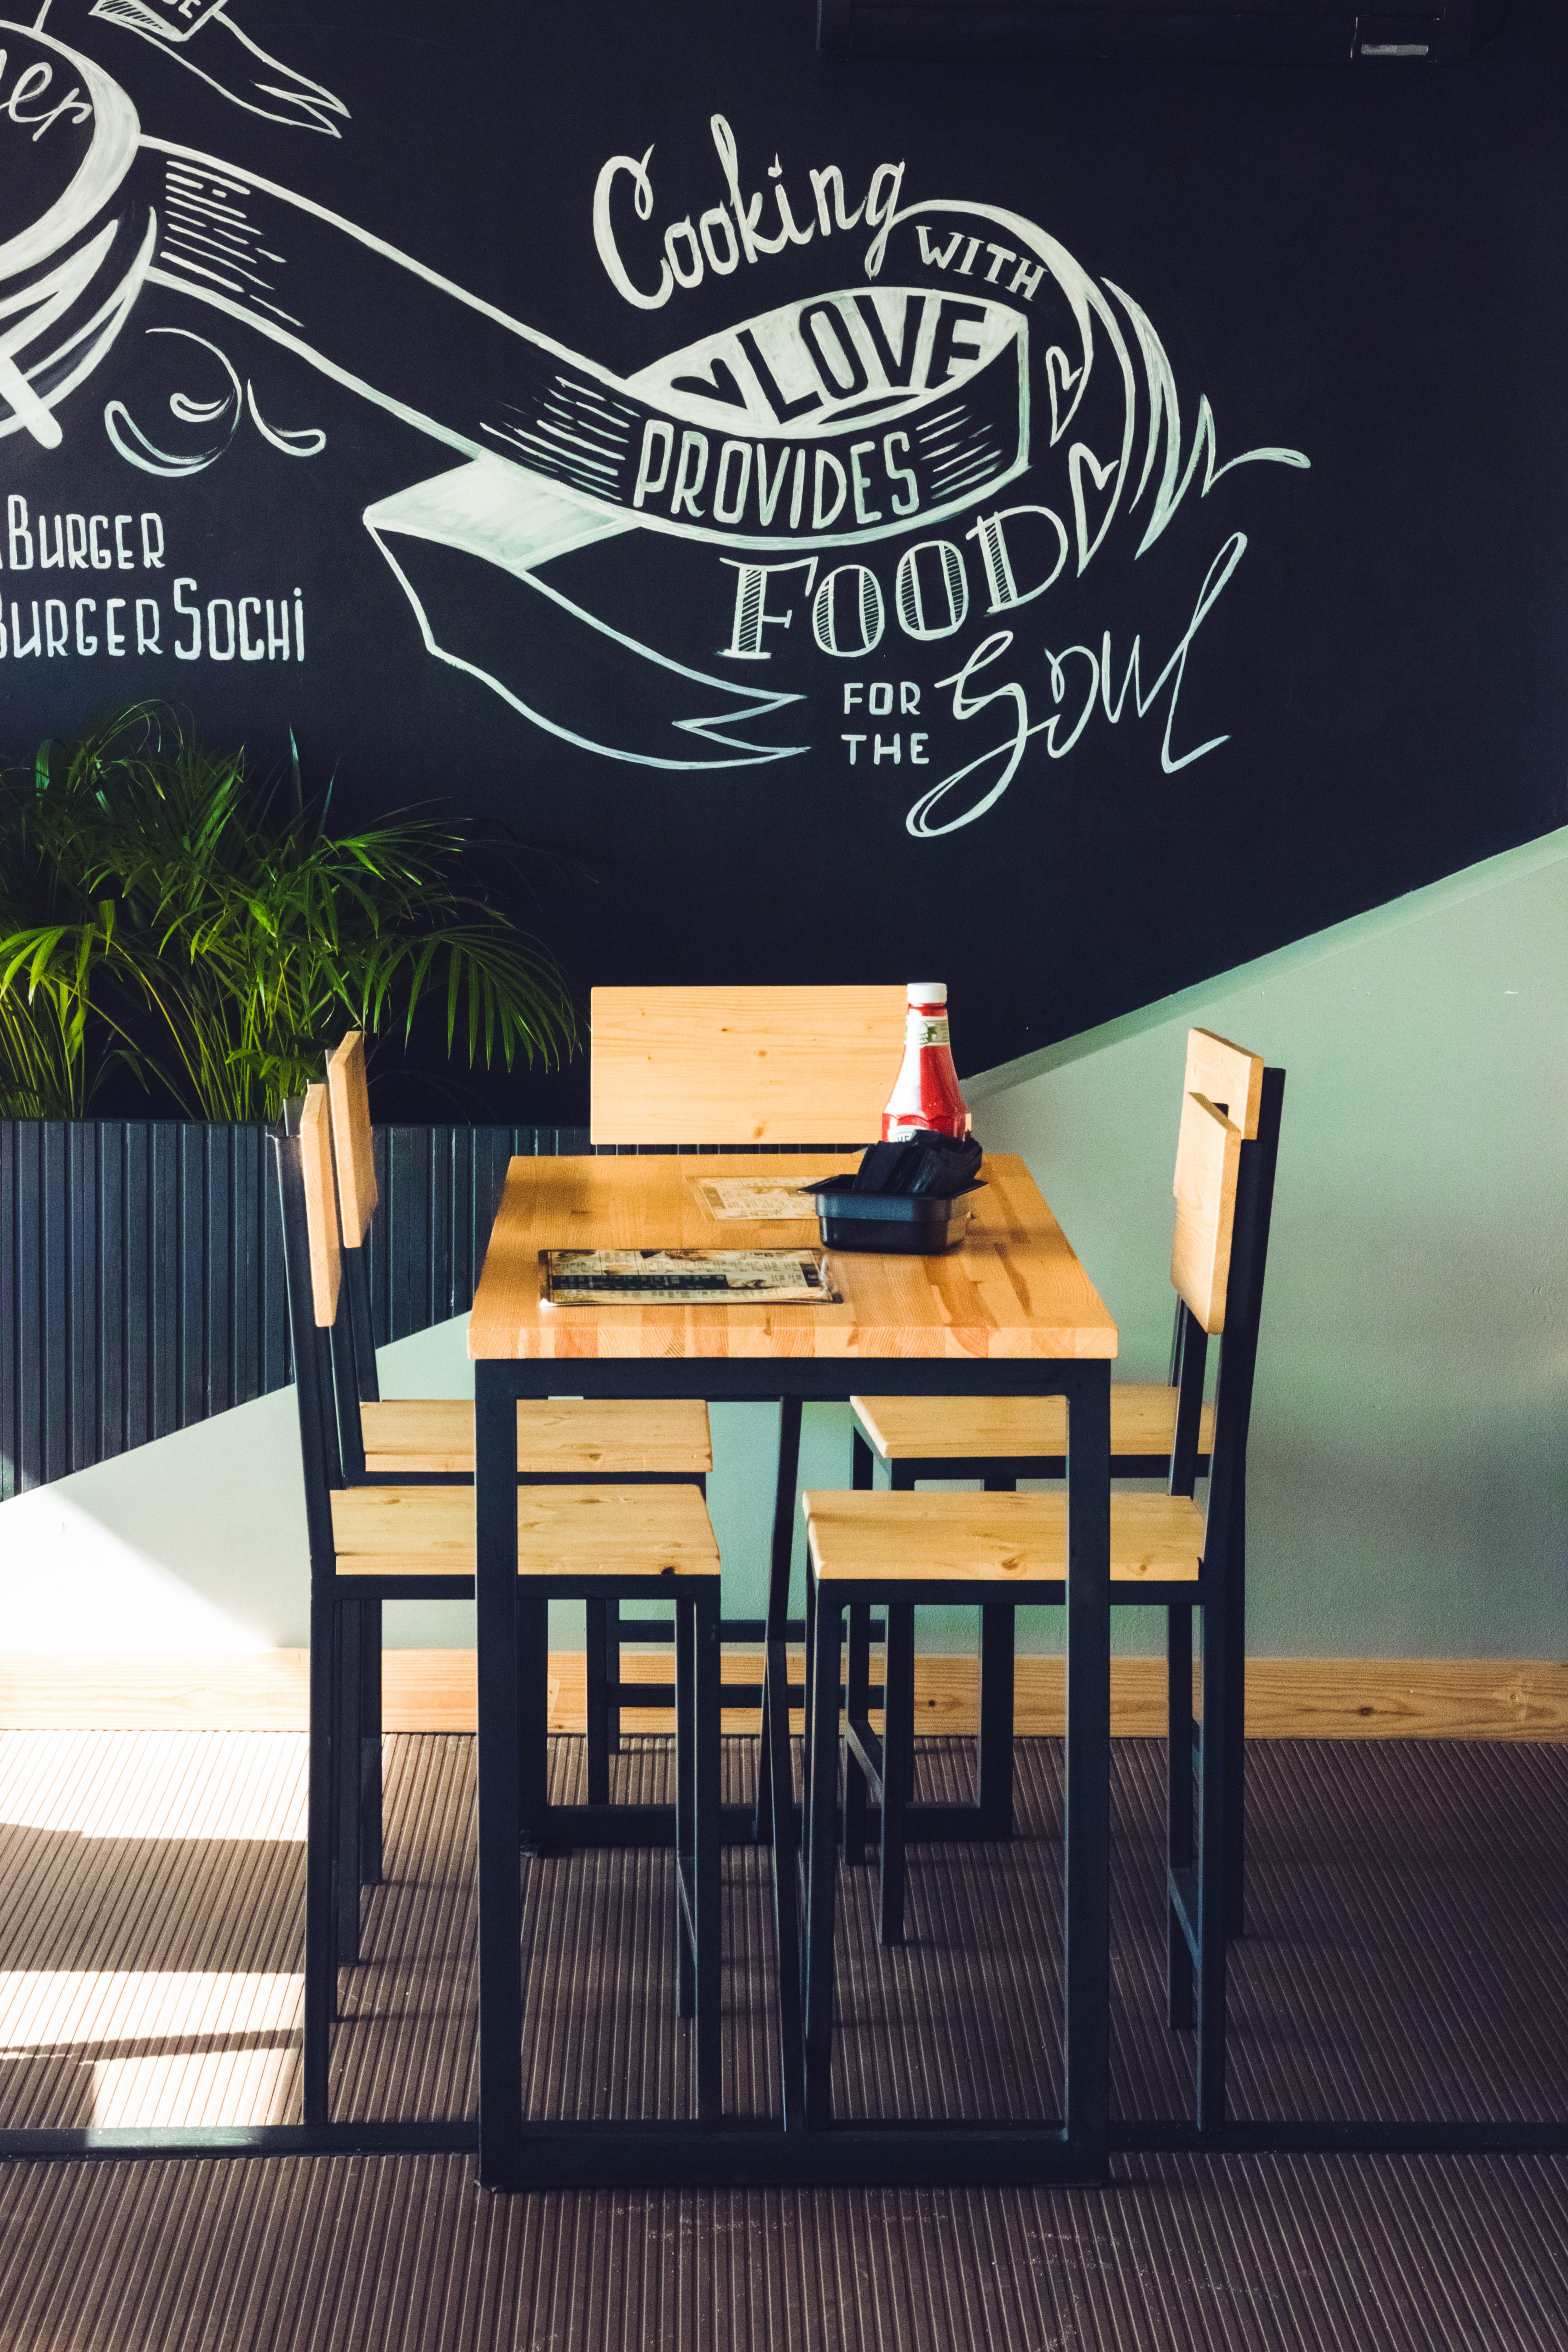 Free photo restaurant table and chairs